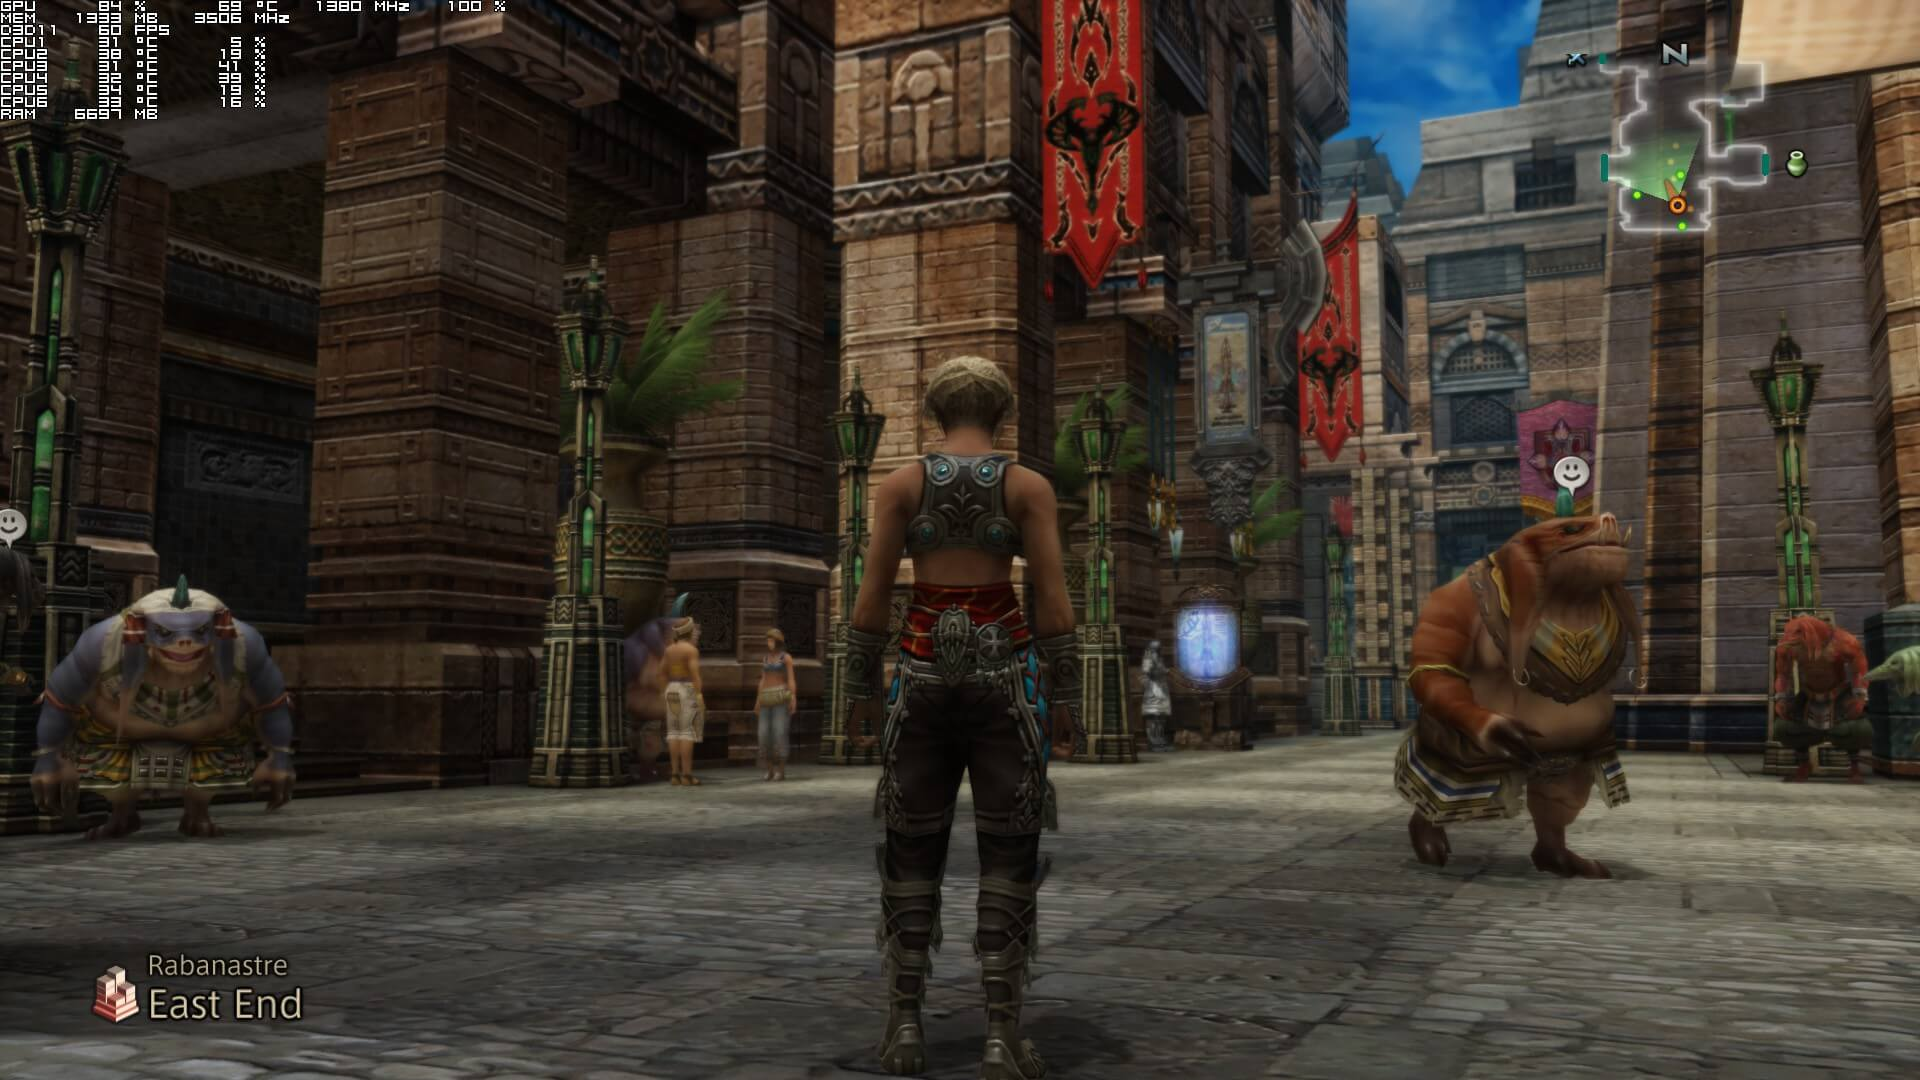 Final Fantasy XII The Zodiac Age PC Performance Analysis - DSOGaming